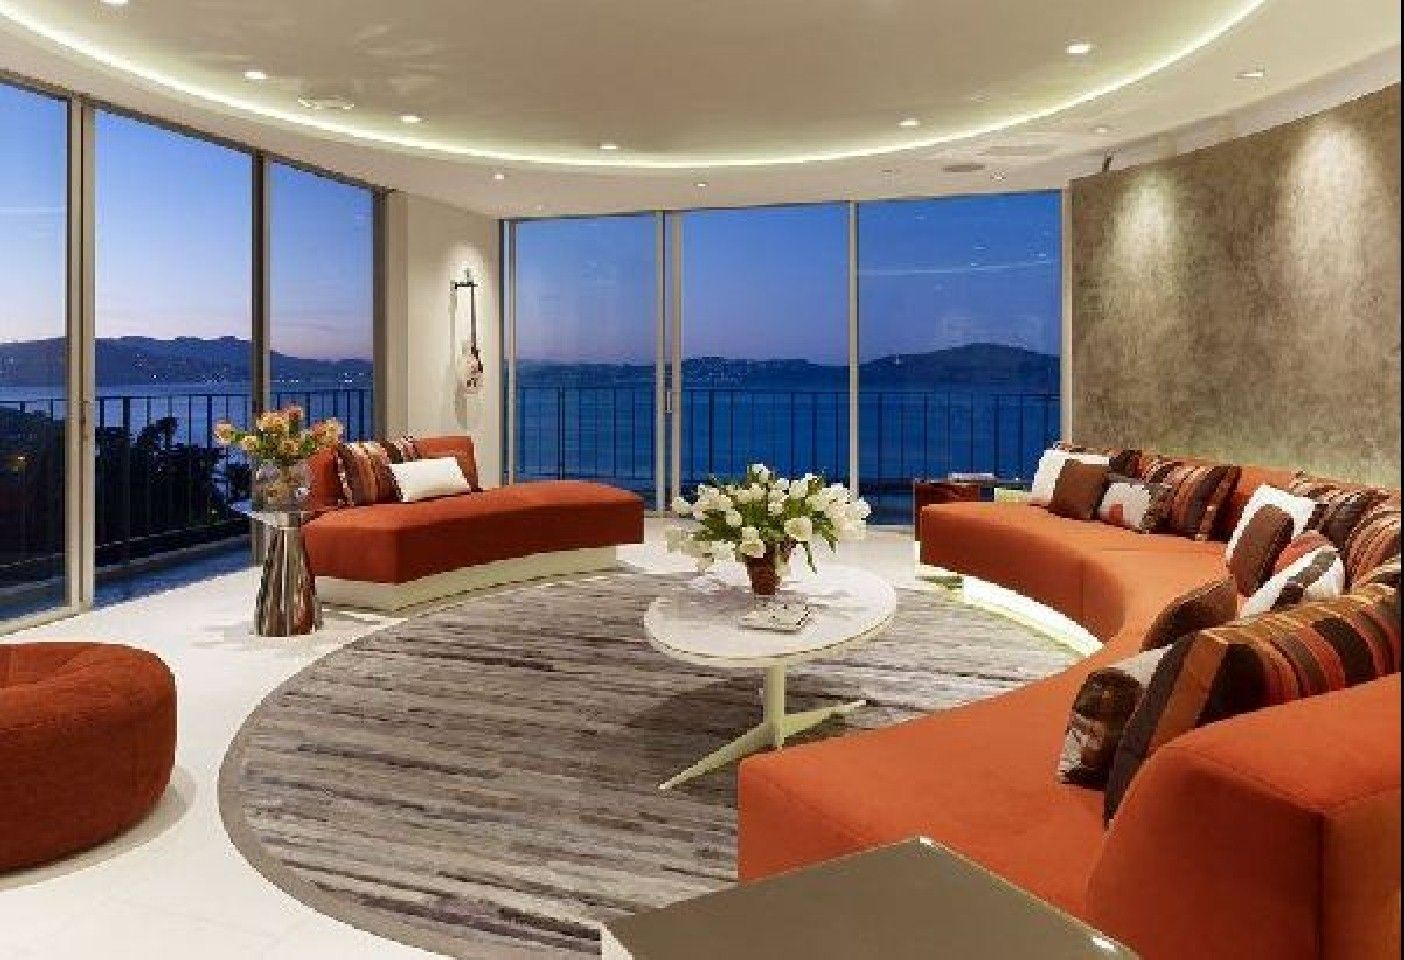 Luxury apartments interior design - Simple Luxury Apartment Bedroom Great The Lawhill Luxury Apartments In With Interior Design Apartment